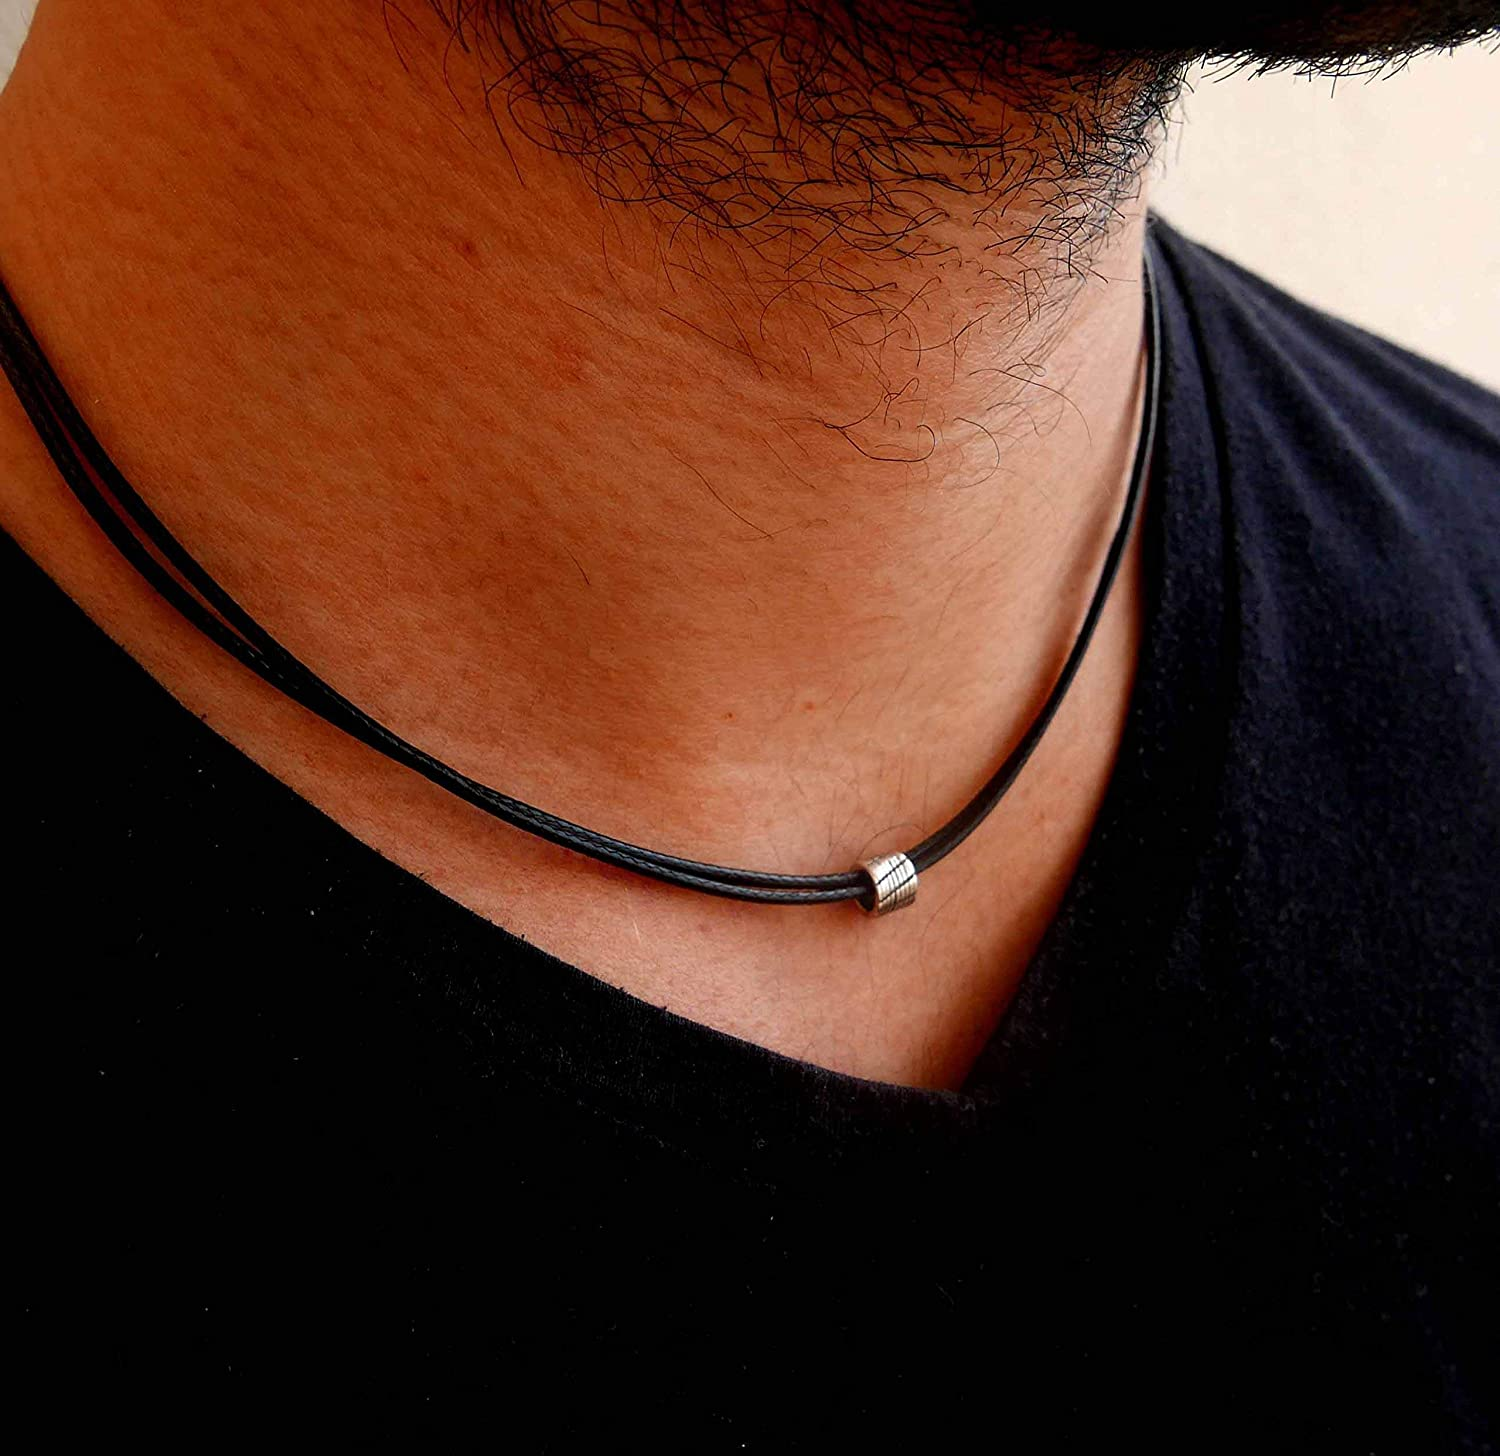 Handmade Black Fabric Necklace For Men Set With a Stainless Steel Bead By Galis Jewelry - Black Necklace For Men - Choker Necklace For Men - Jewelry For Men